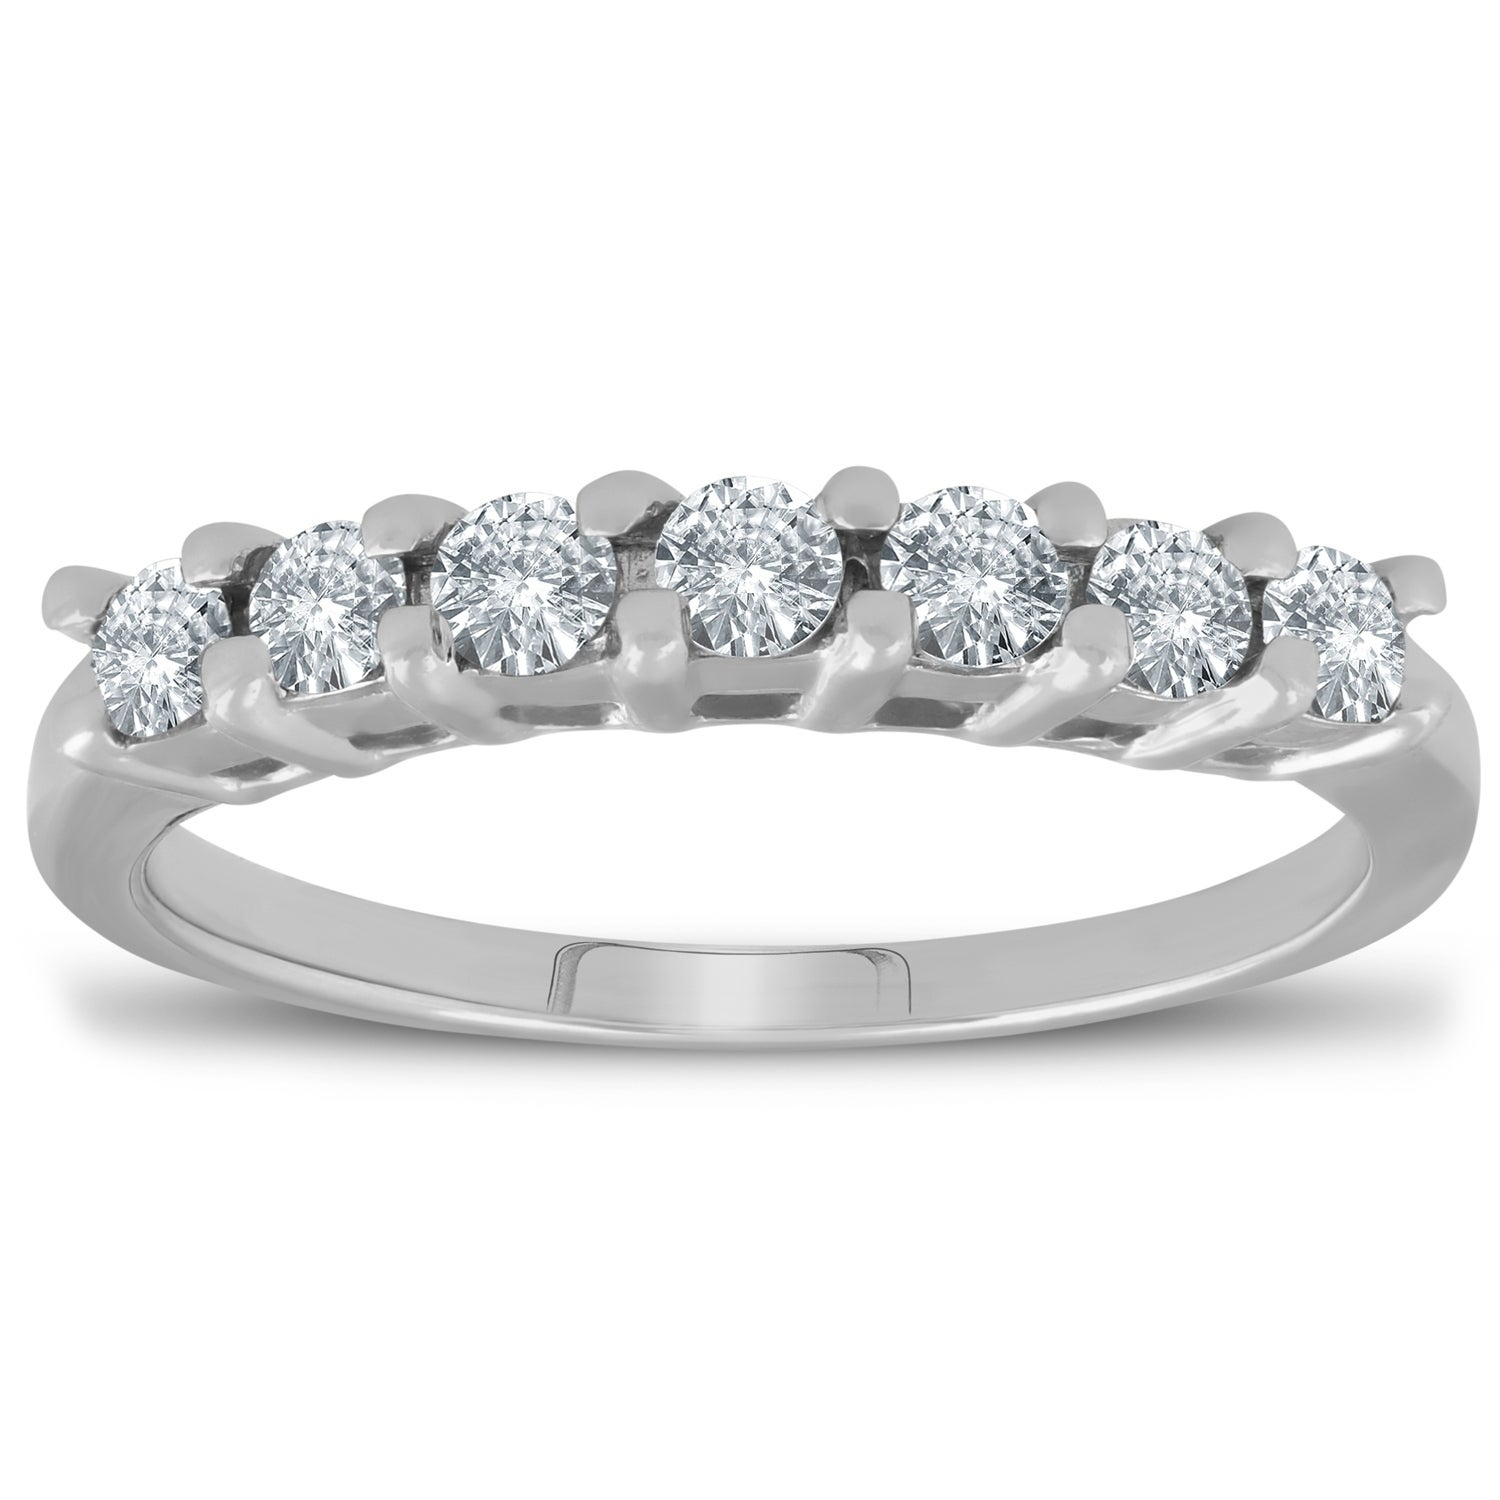 Pompeii3 14k White Gold 1/2 Ct Tdw Diamond 7 Stone Wedding Ring Womens Anniversary Band Intended For 2019 Diamond Seven Stone Anniversary Ring In White Gold (View 13 of 25)